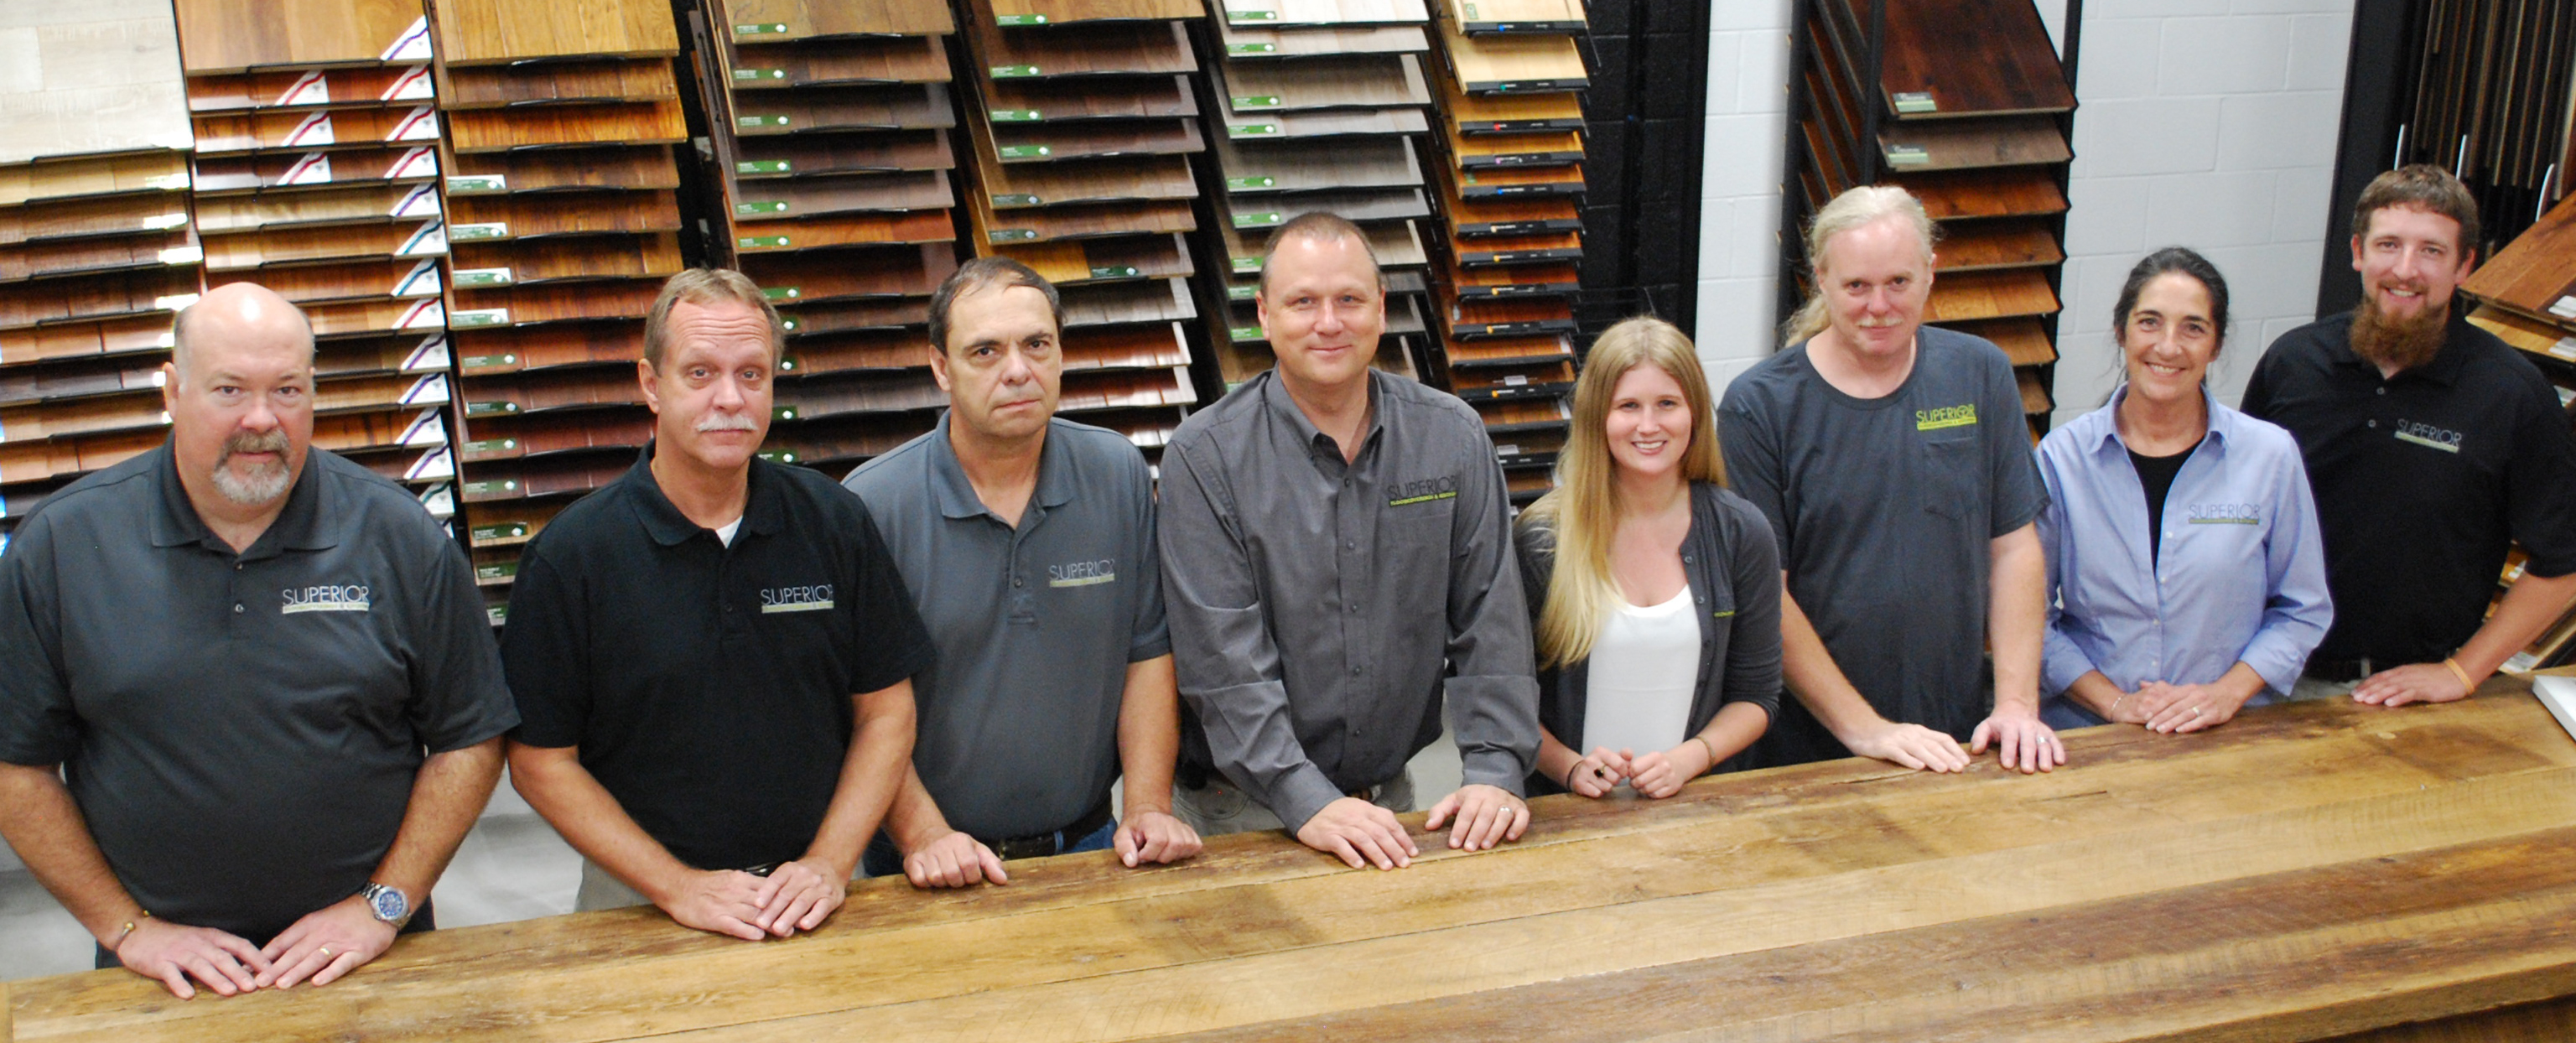 Superior Floorcoverings & Kitchens - Staff Photo